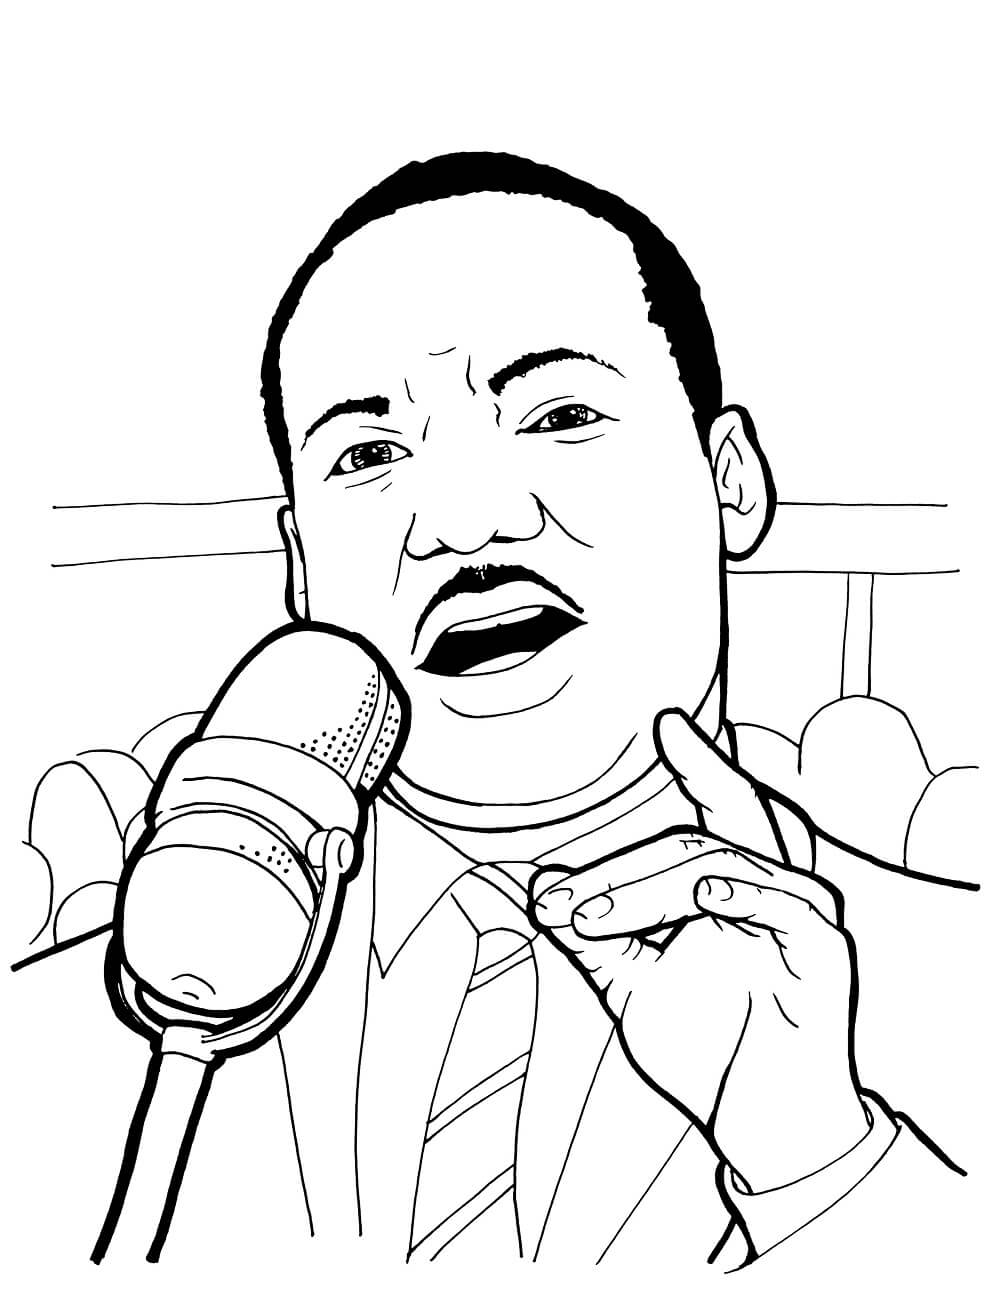 martin luther king coloring page martin luther king jr coloring pages realistic coloring martin page king coloring luther